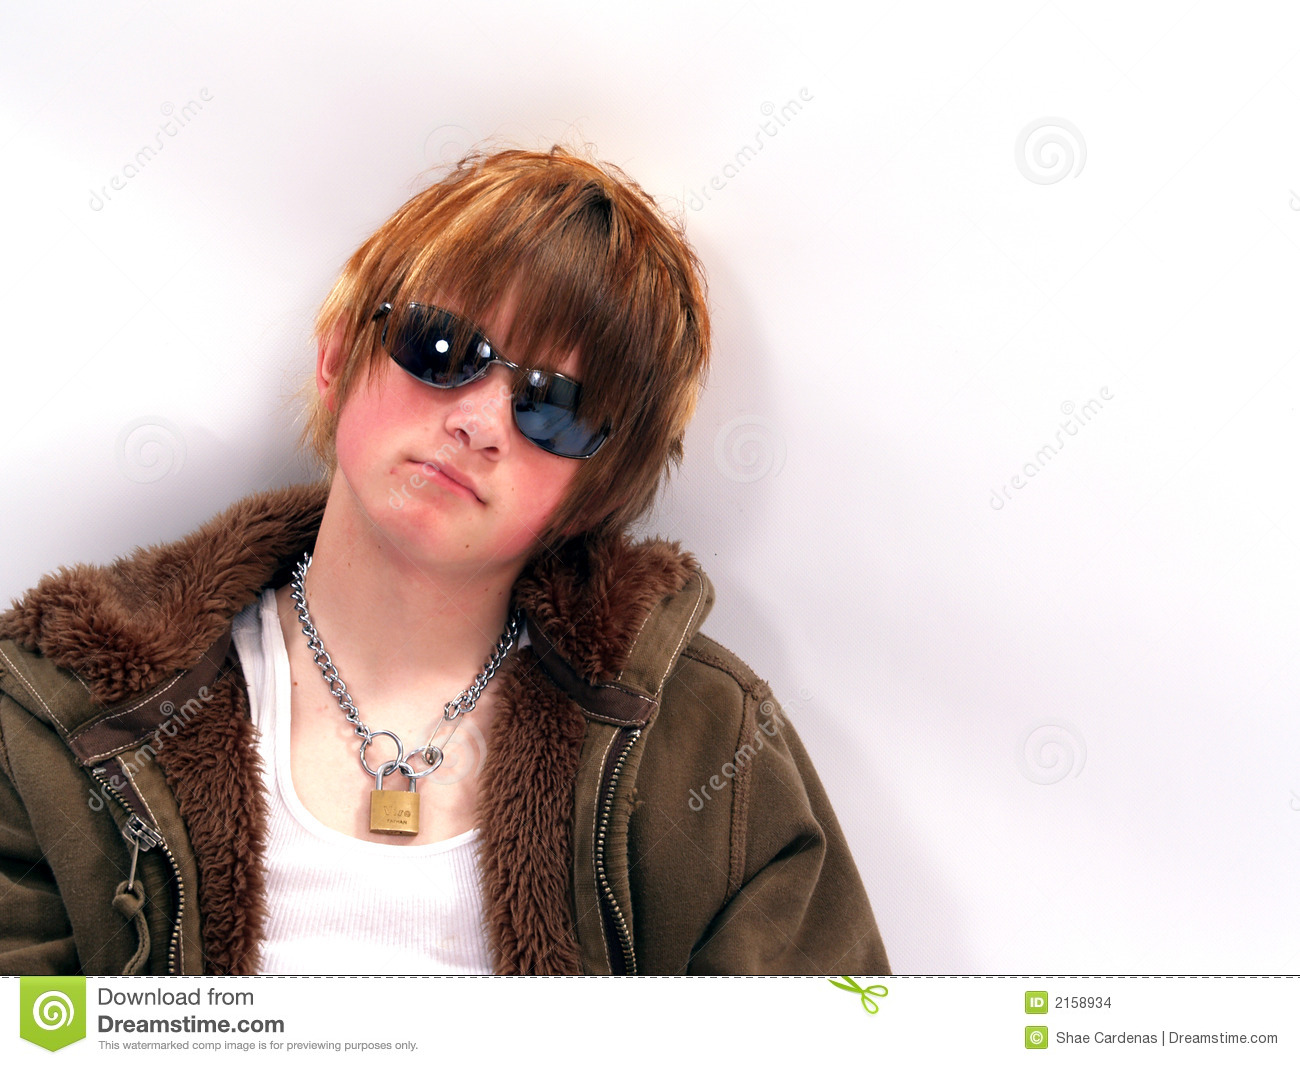 Teen Boy with attitude wearing sunglasses - copy space